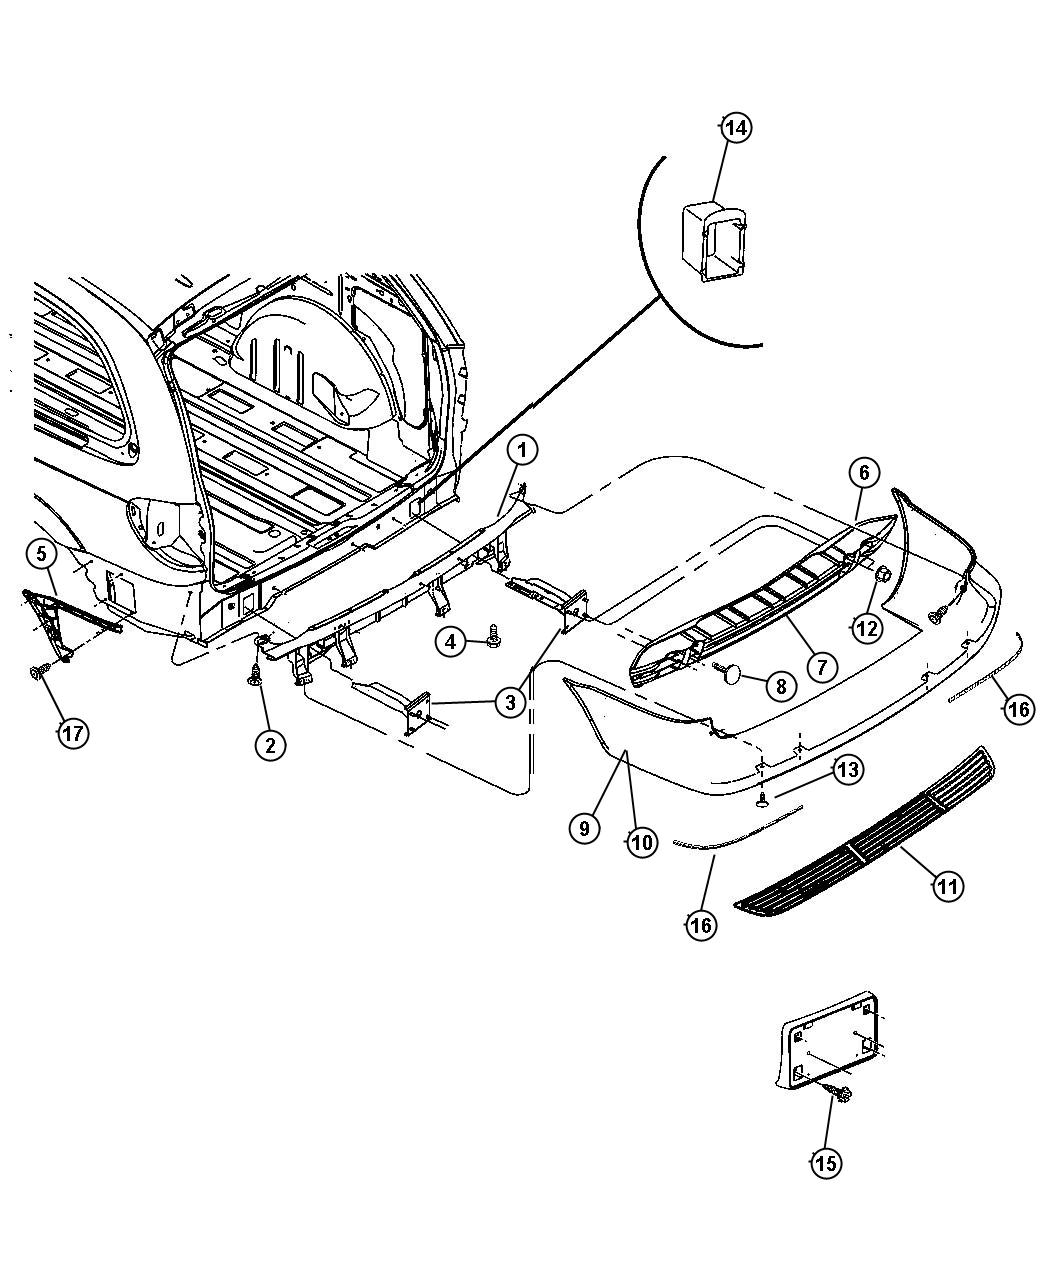 Toyota Highlander Liftgate Parts Diagram Toyota